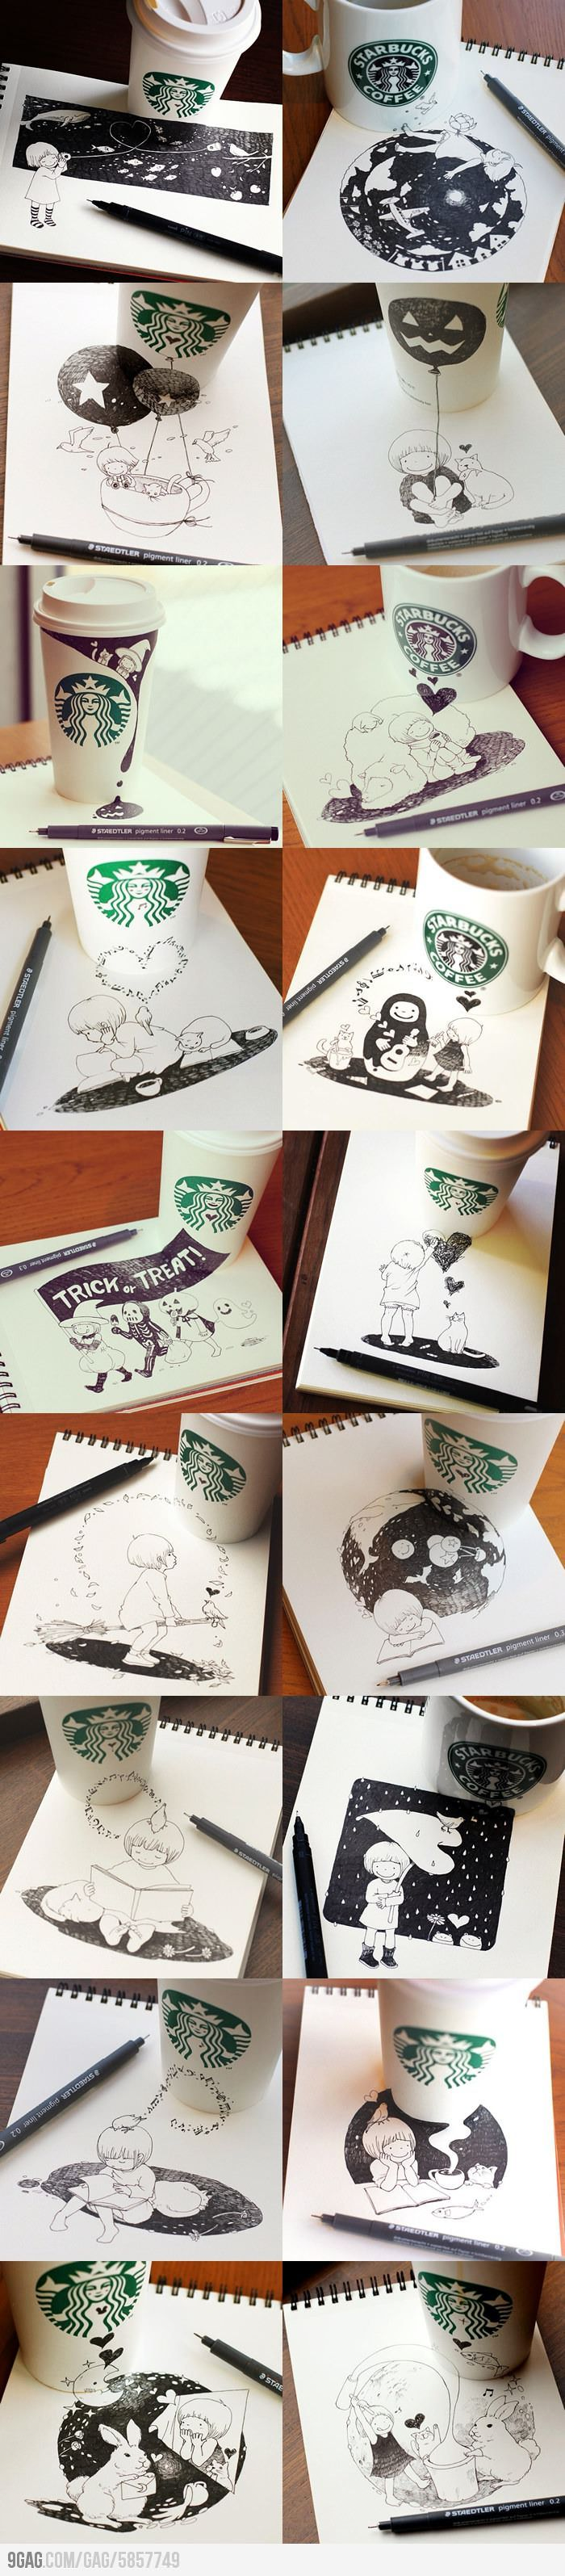 Awesome Starbucks Drawings by Tomoko Shintani